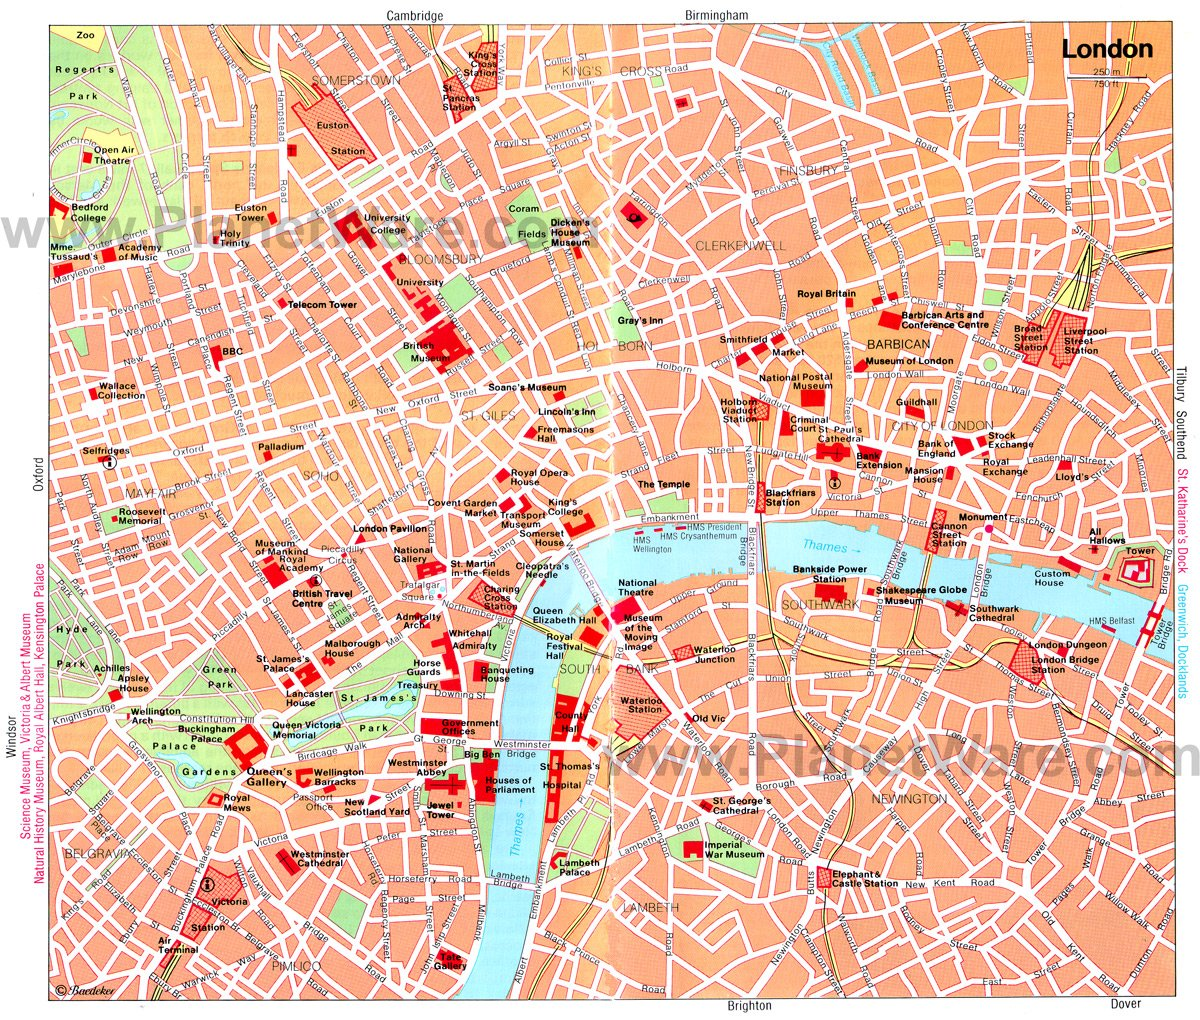 17 TopRated Tourist Attractions in London – London Tourist Maps